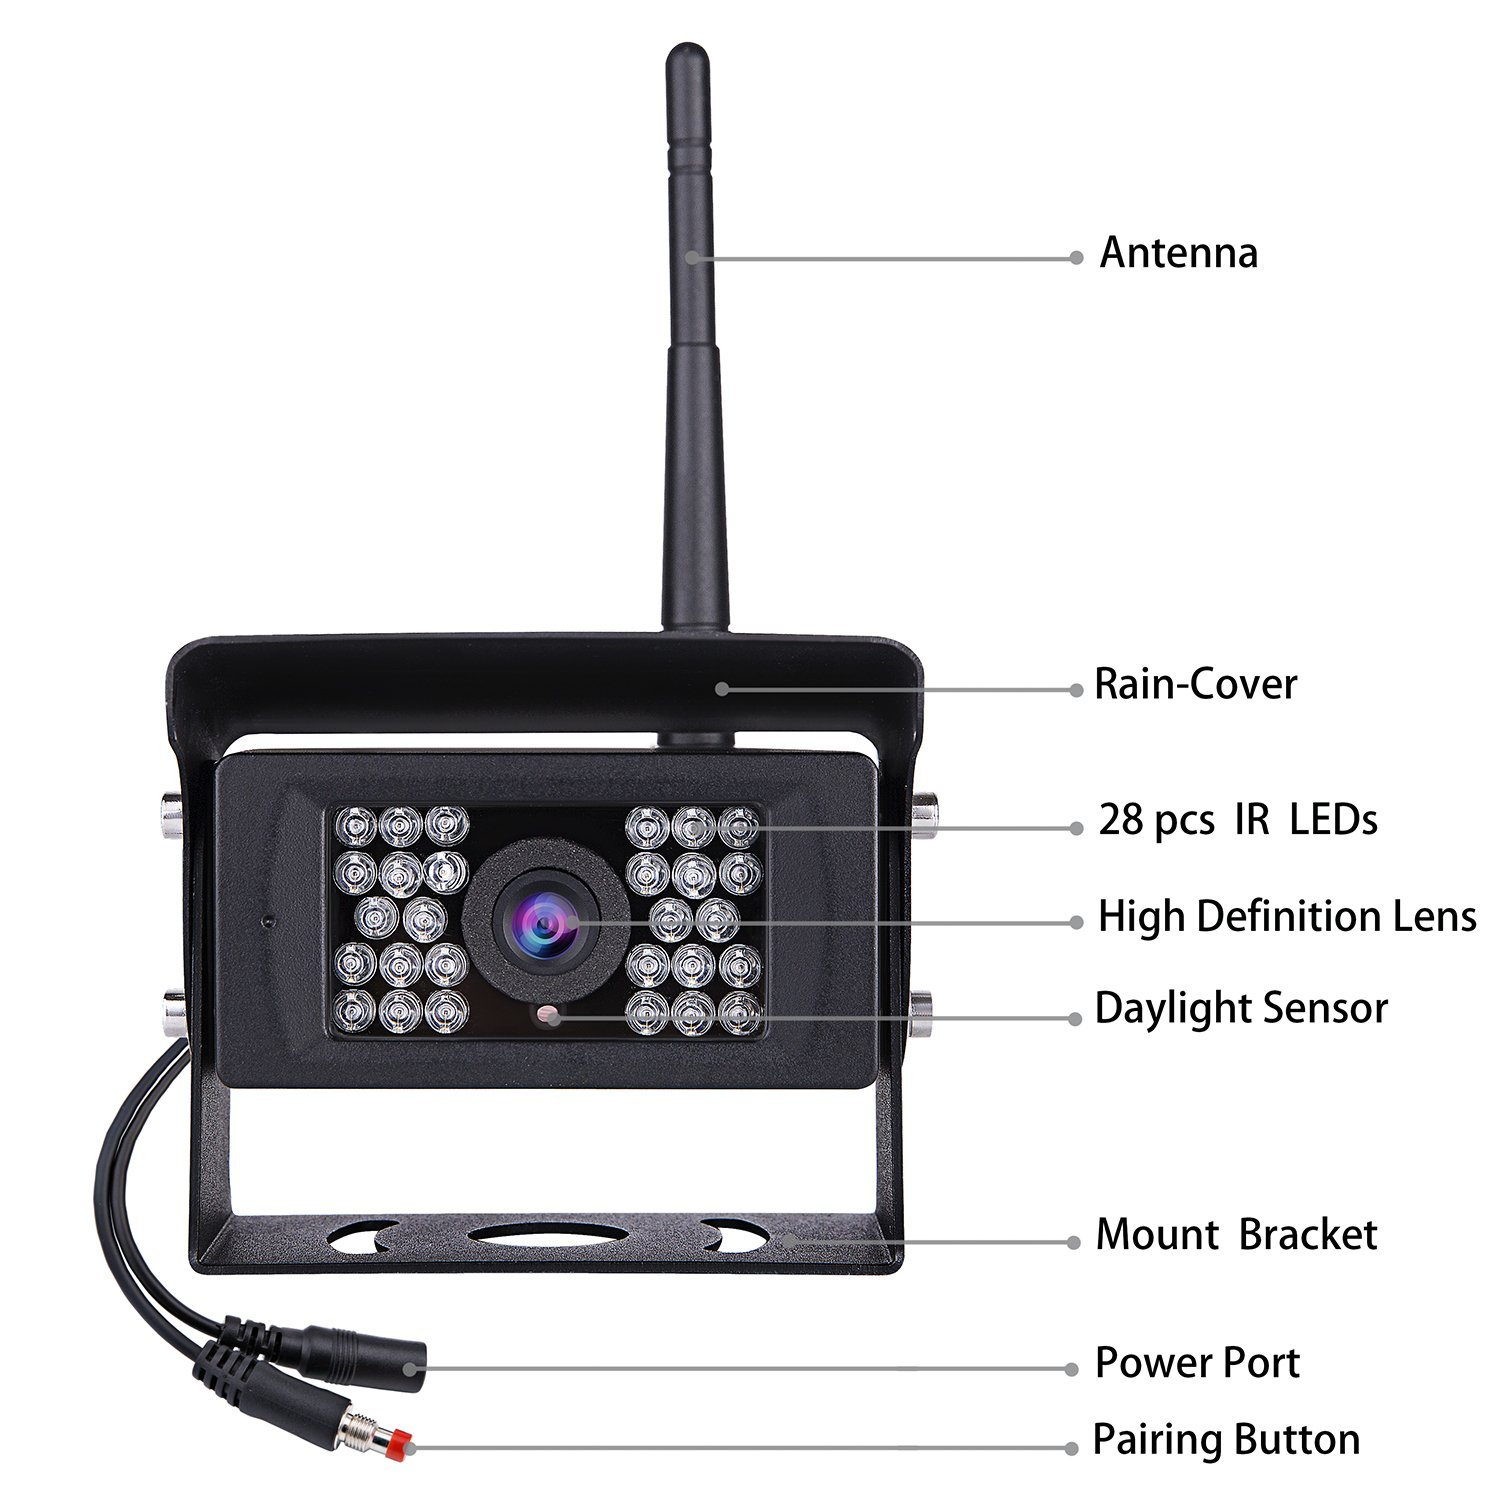 Truck Bus Wireless Systems Reverse Rear View Back Up 7inch Hd Backup Camera Wiring 1 X Car 2 Antennas Cigarette Lighter User Manual